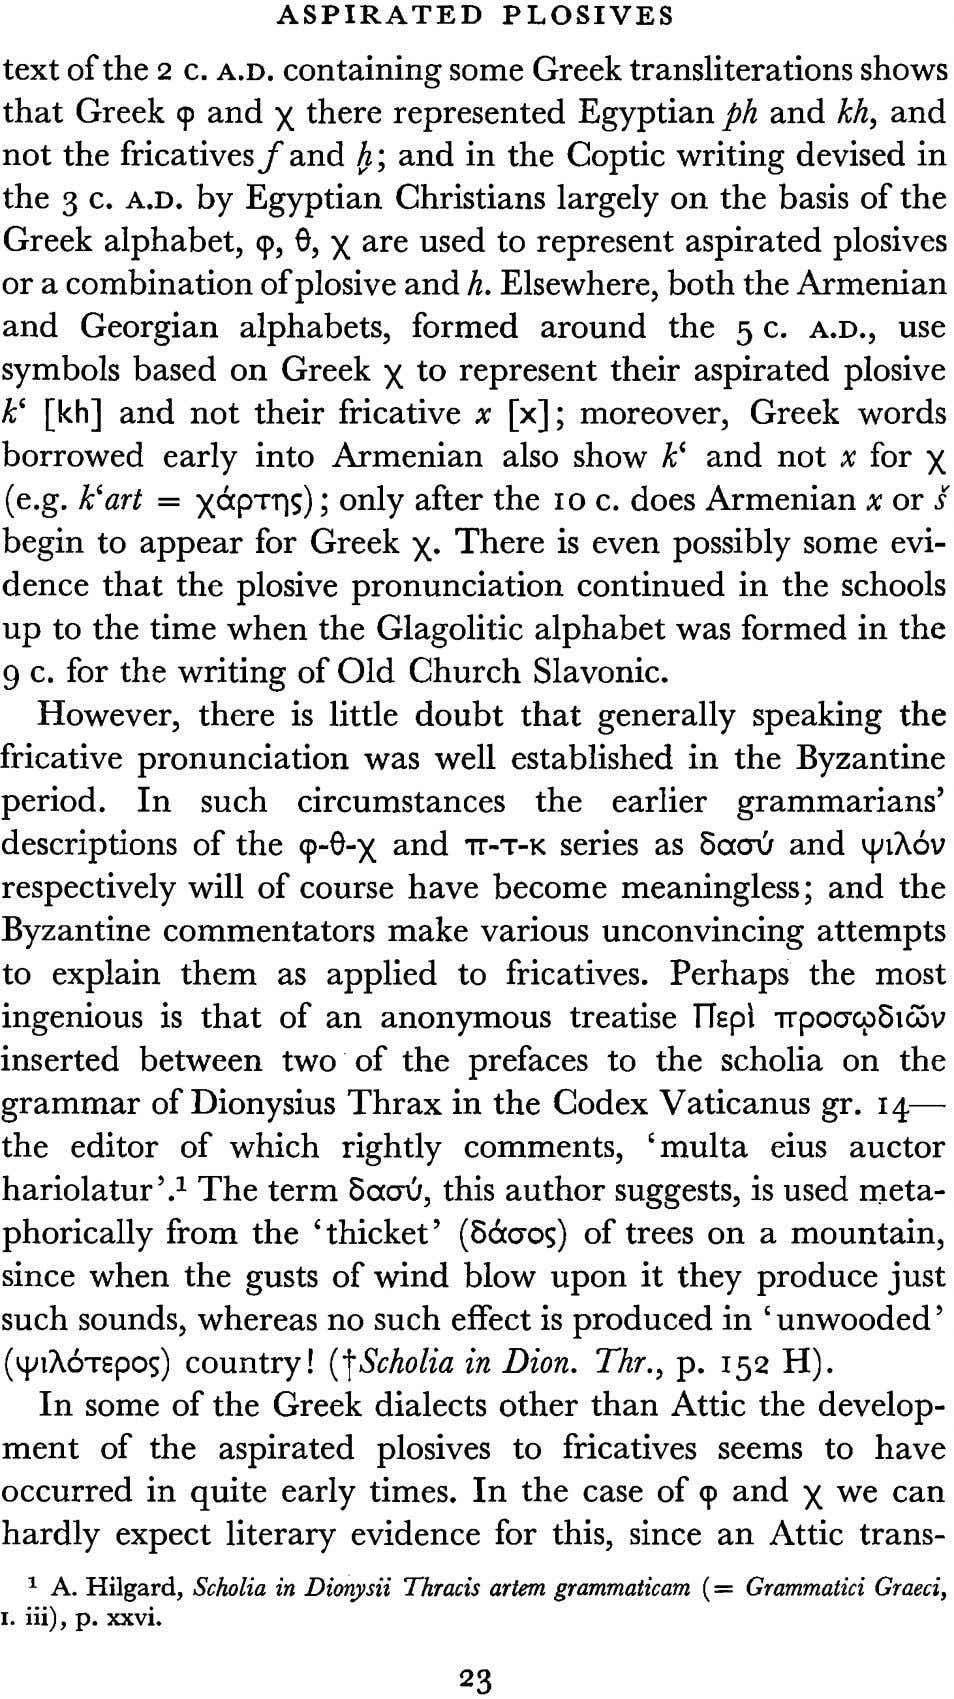 ASPIRATED PLOSIVES text of the 2 c. A.D. containing some Greek transliterations shows that Greek